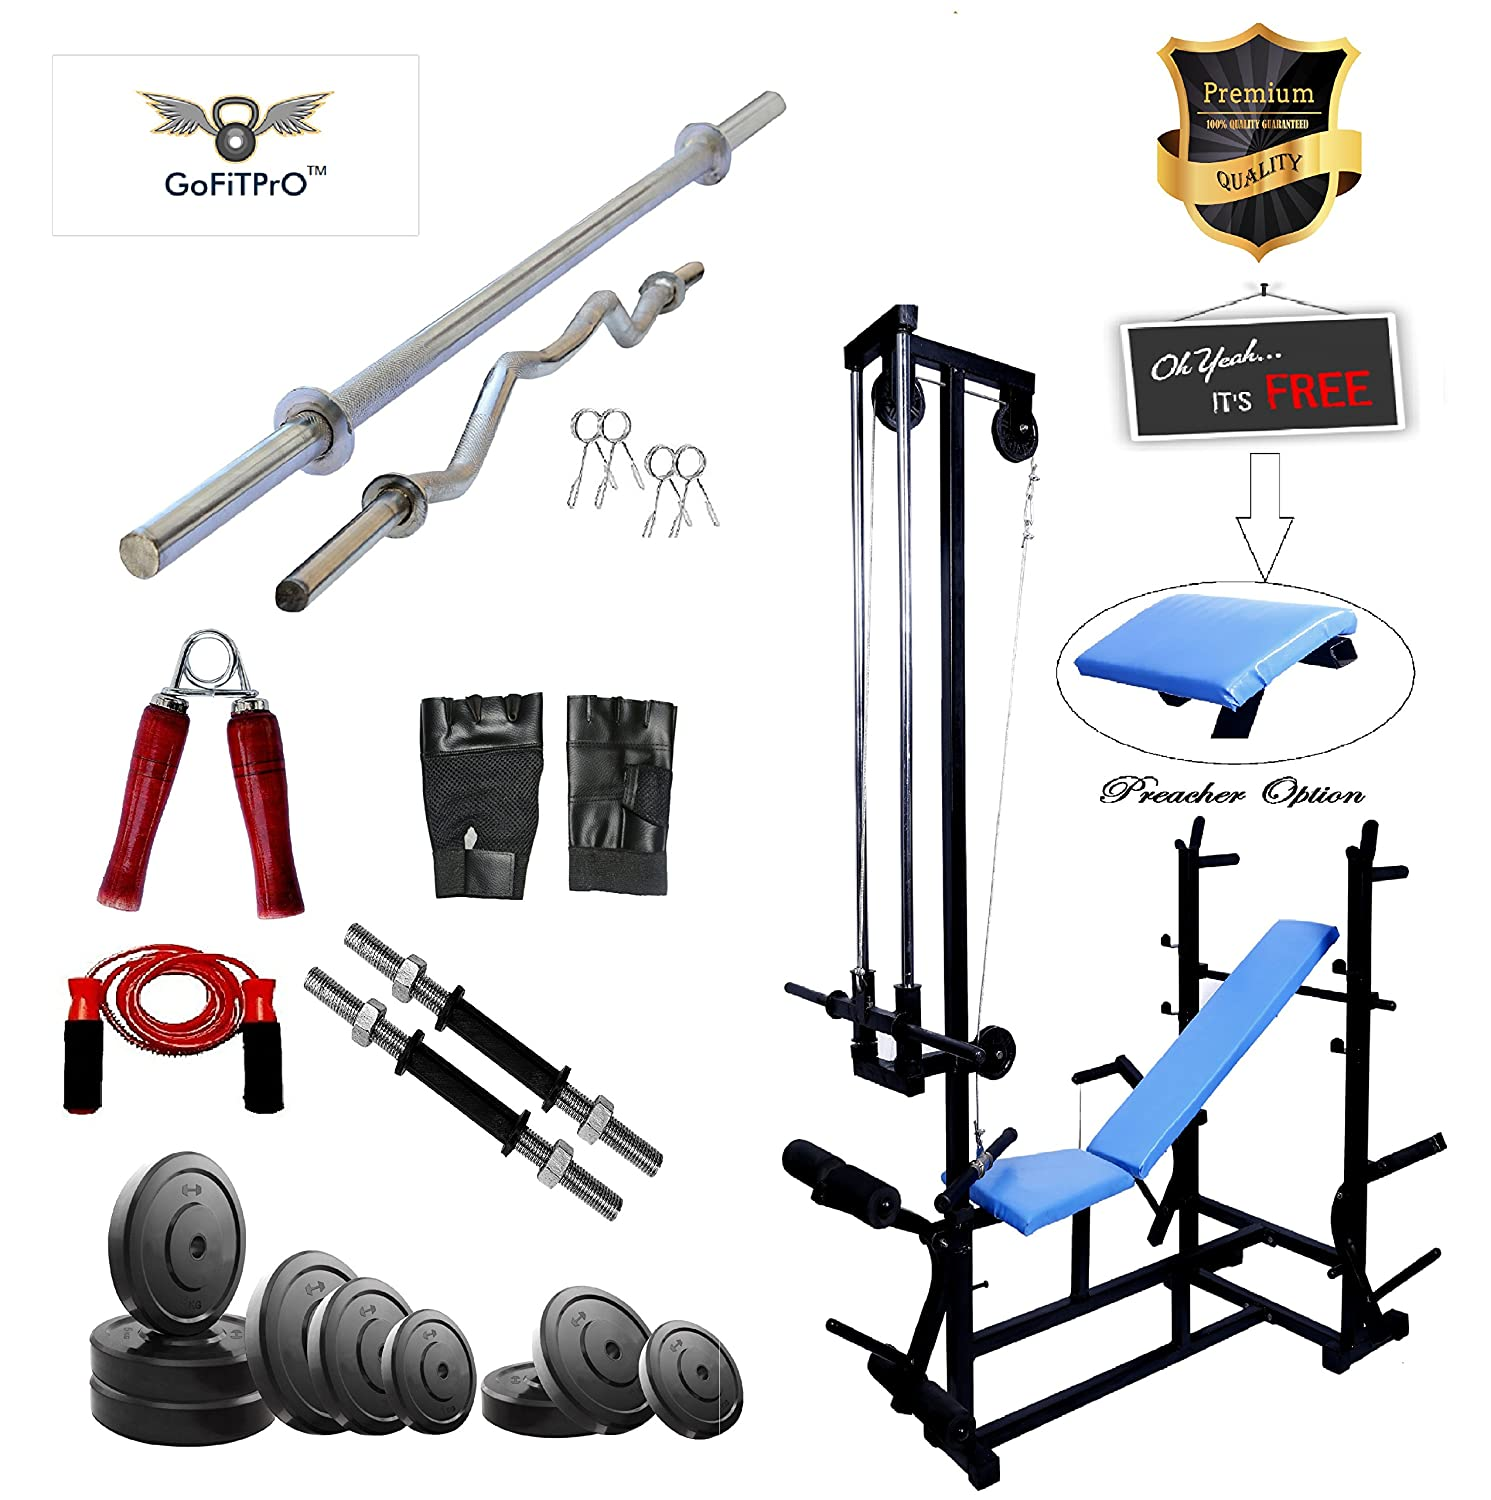 Gofitpro 20 In 1 Bench Double Support Special Quality (Pipe